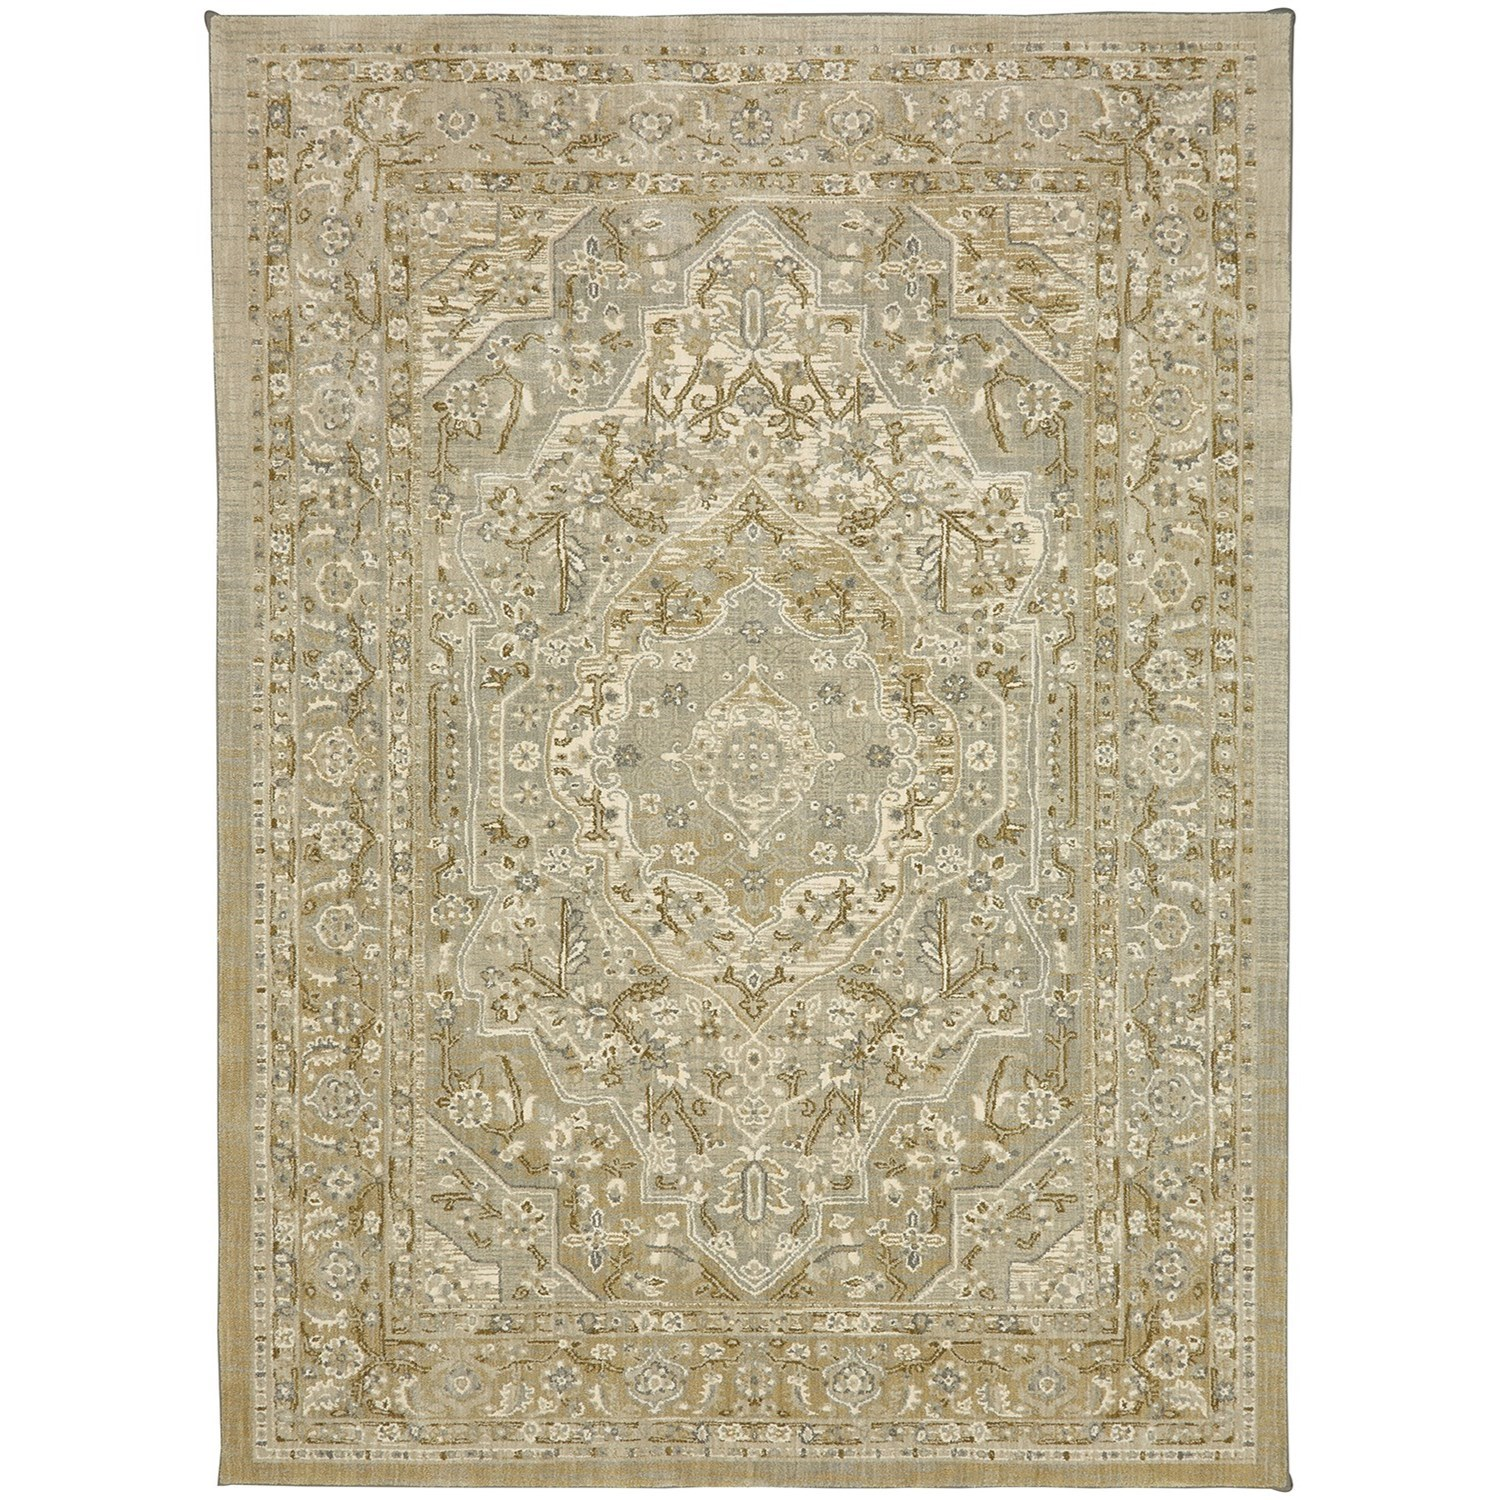 "Touchstone 3' 6""x5' 6"" Rectangle Ornamental Area Rug by Karastan Rugs at Darvin Furniture"